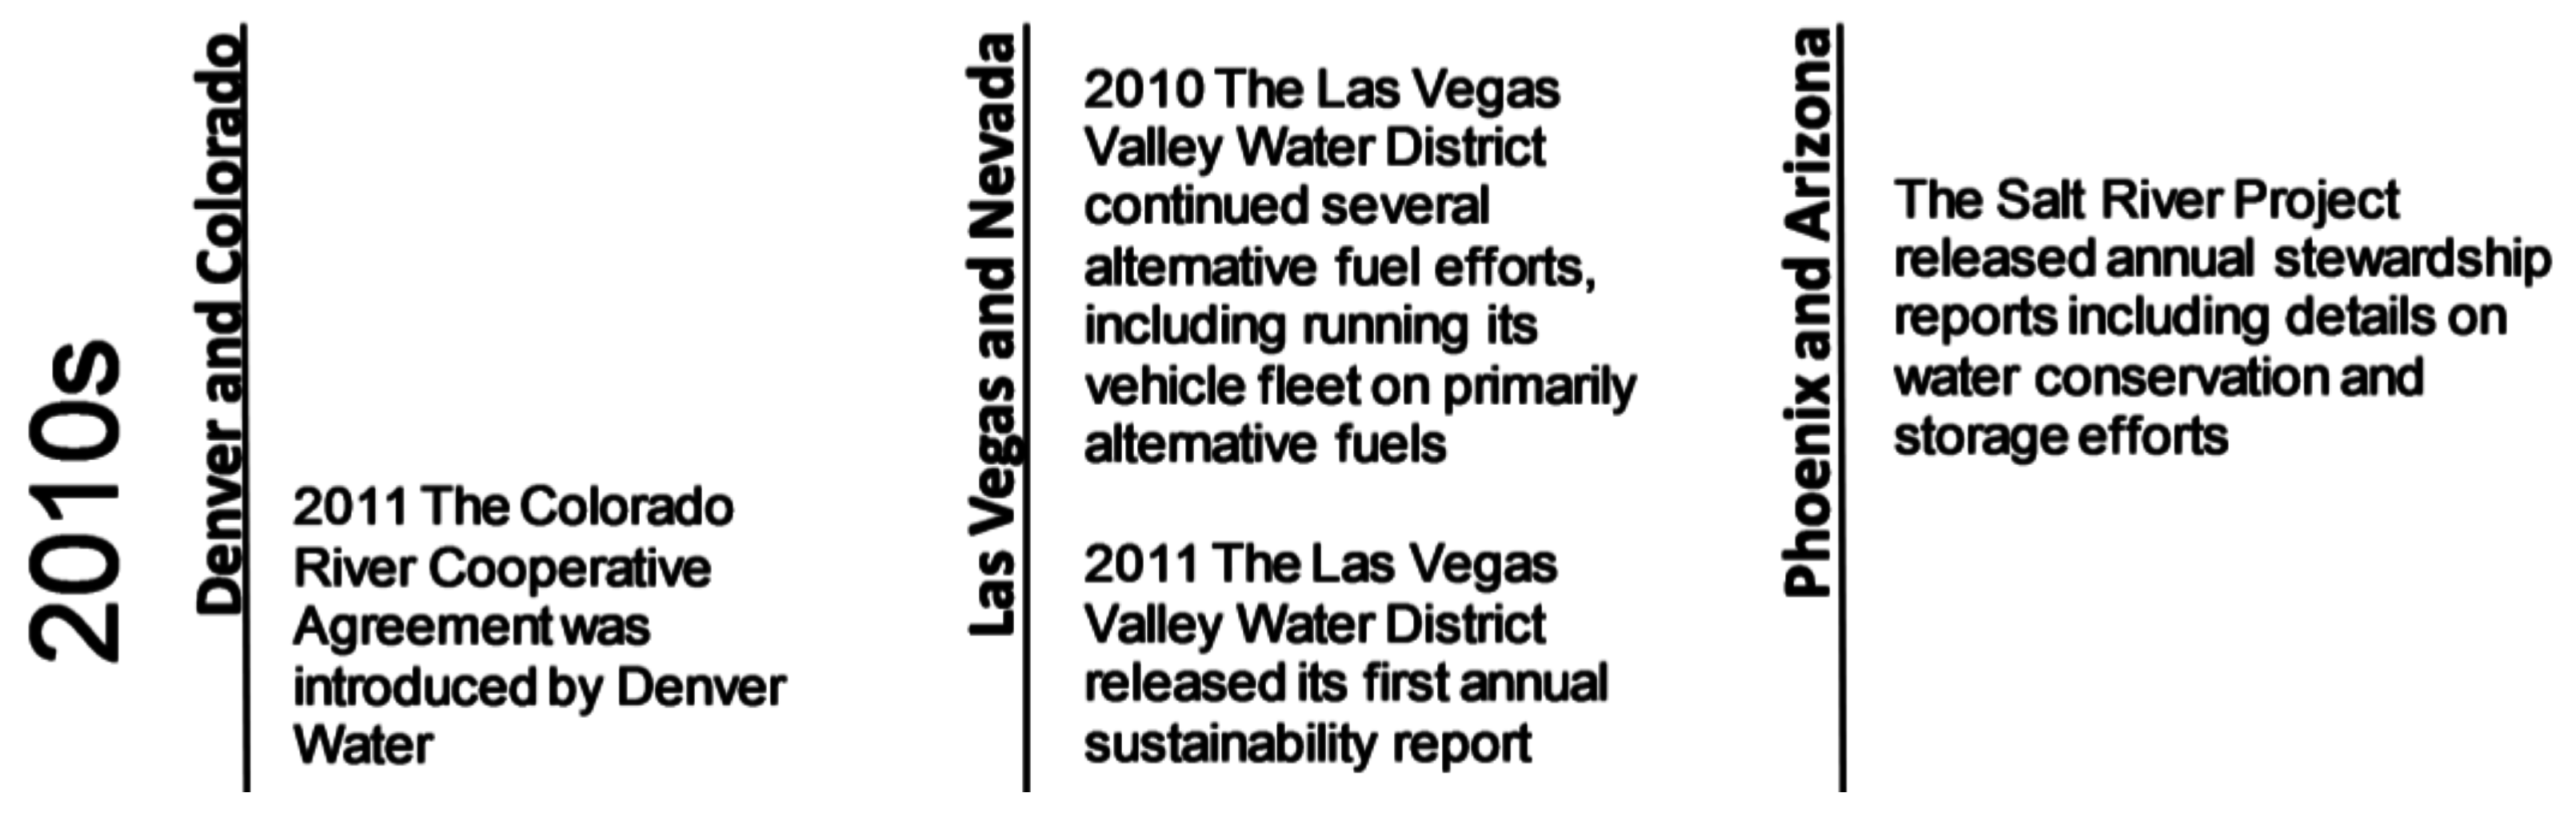 an analysis of the colorado river project